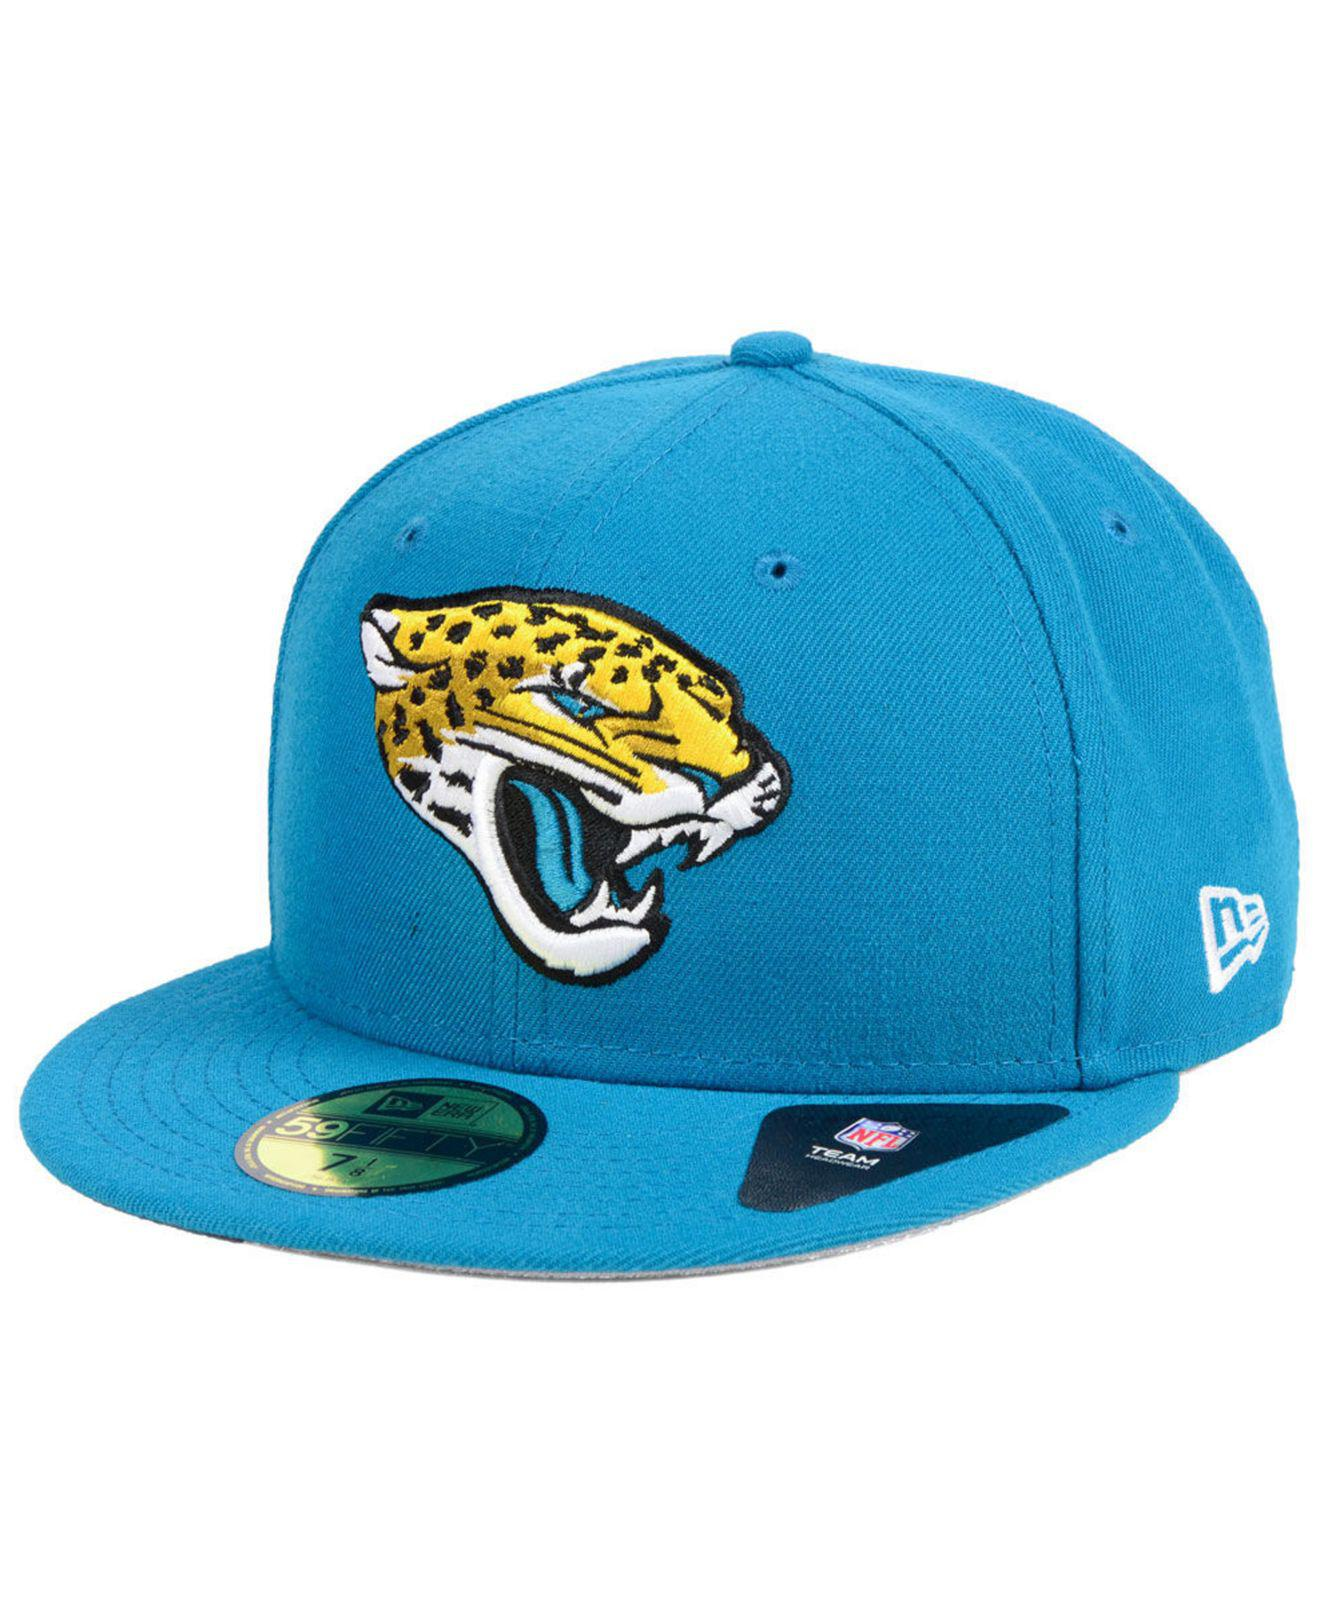 d11ad93ea Lyst - KTZ Jacksonville Jaguars Team Basic 59fifty Fitted Cap in ...